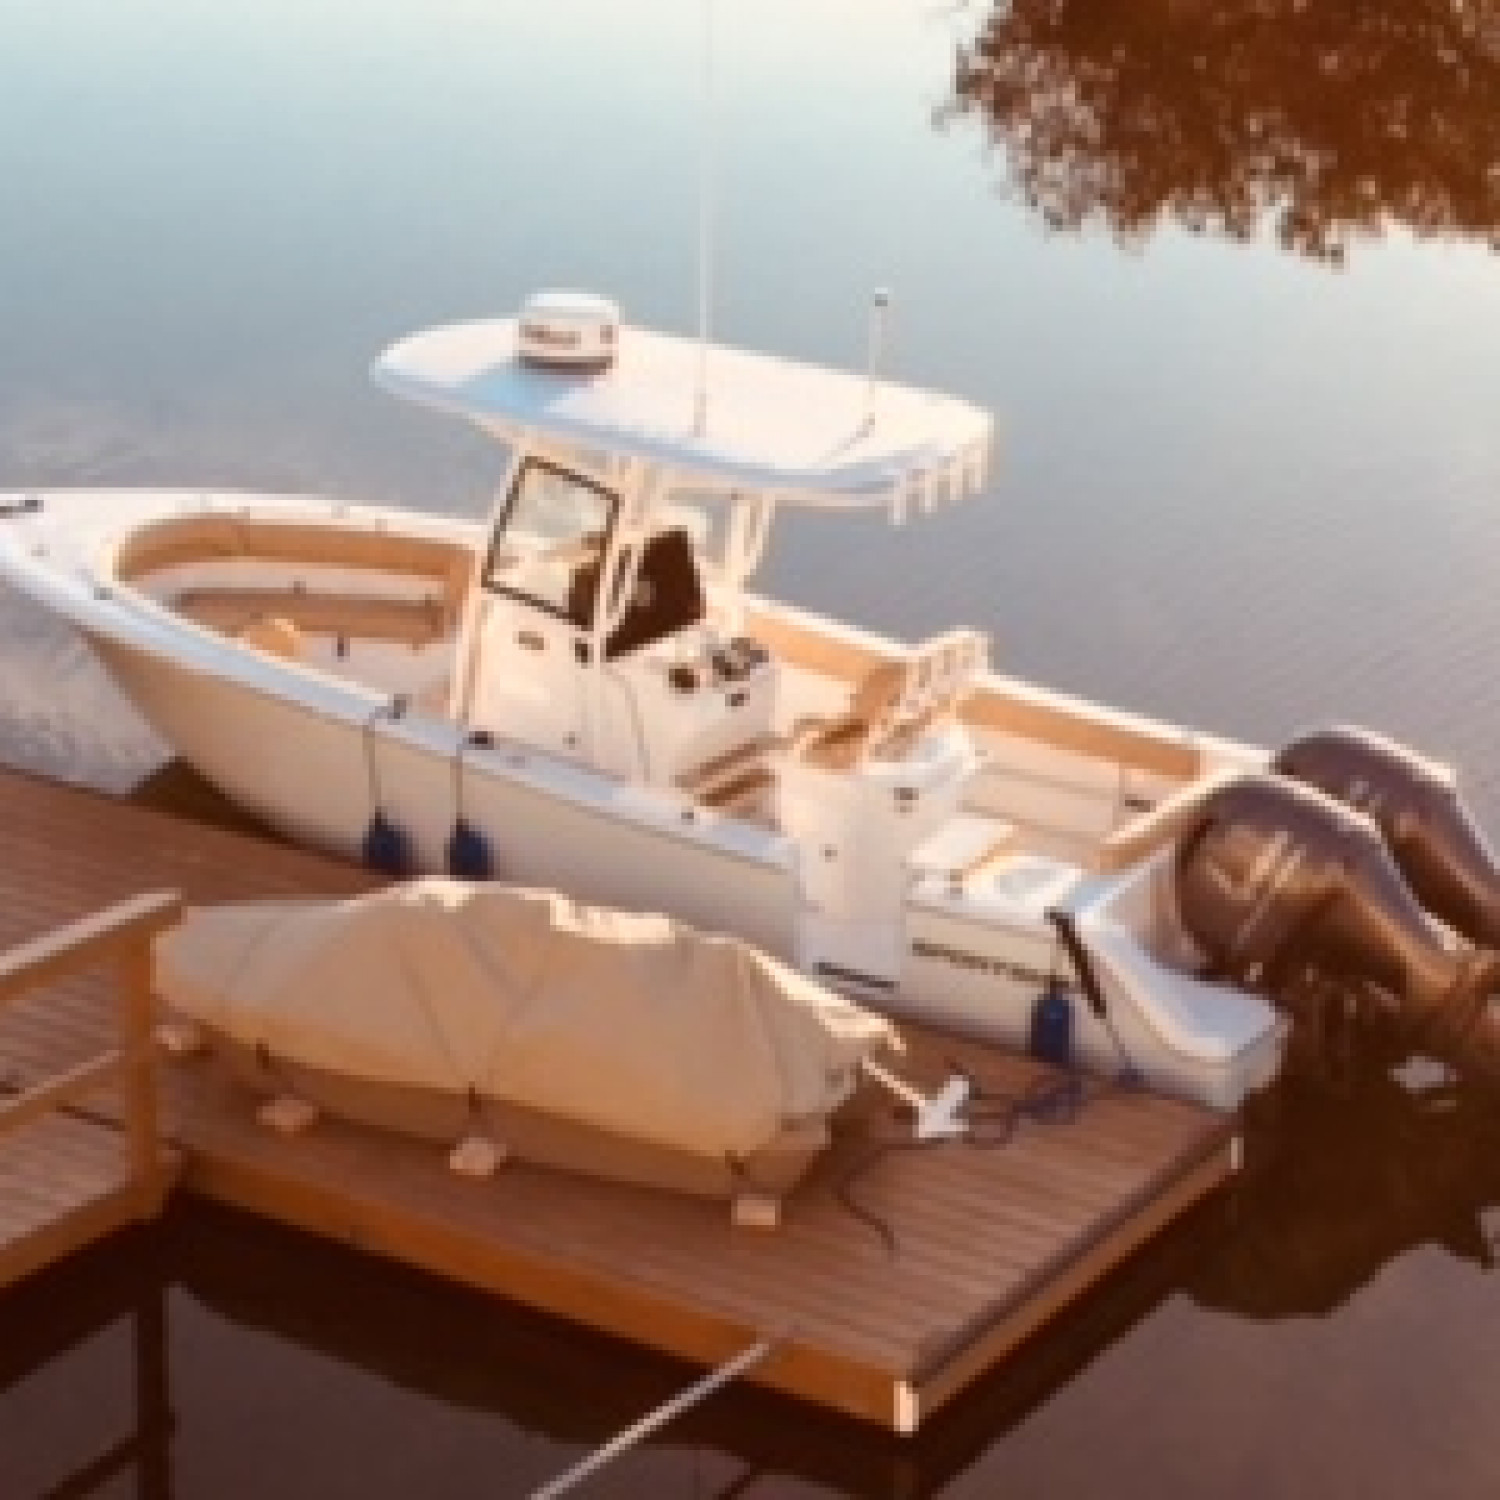 "Title: At home in our ""front yard"" - On board their Sportsman Heritage 251 Center Console - Location: Hernando Beach Florida. Participating in the Photo Contest #SportsmanMarch2018"